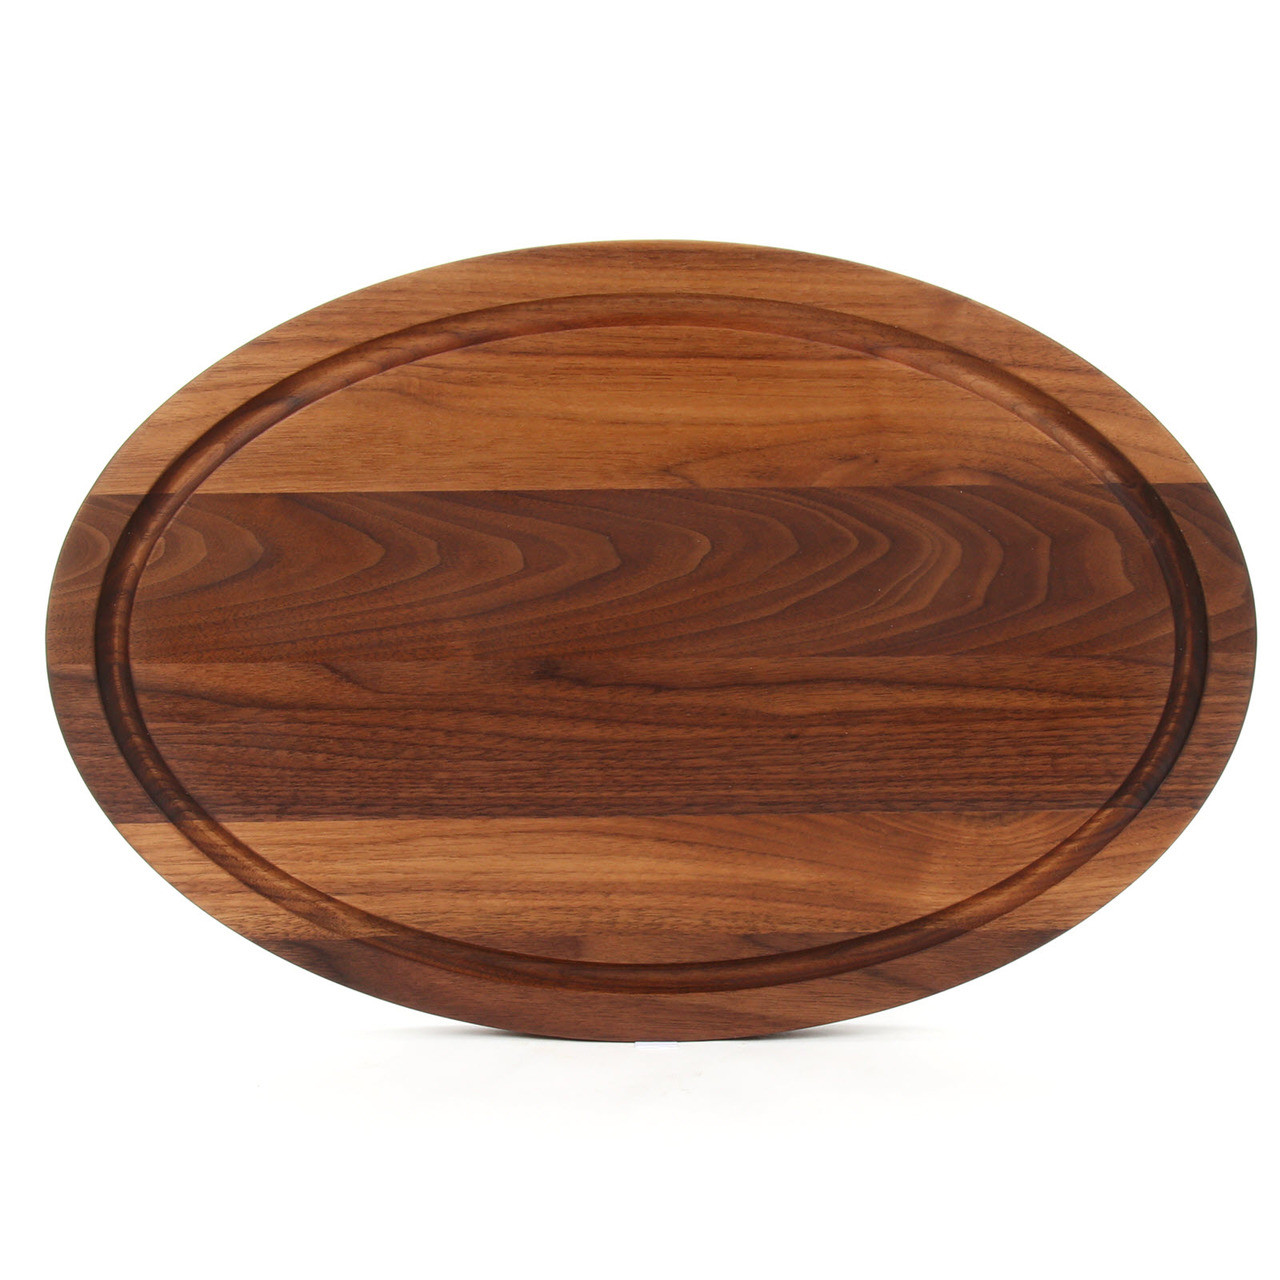 Family Lakehouse Oval Walnut Cutting Board